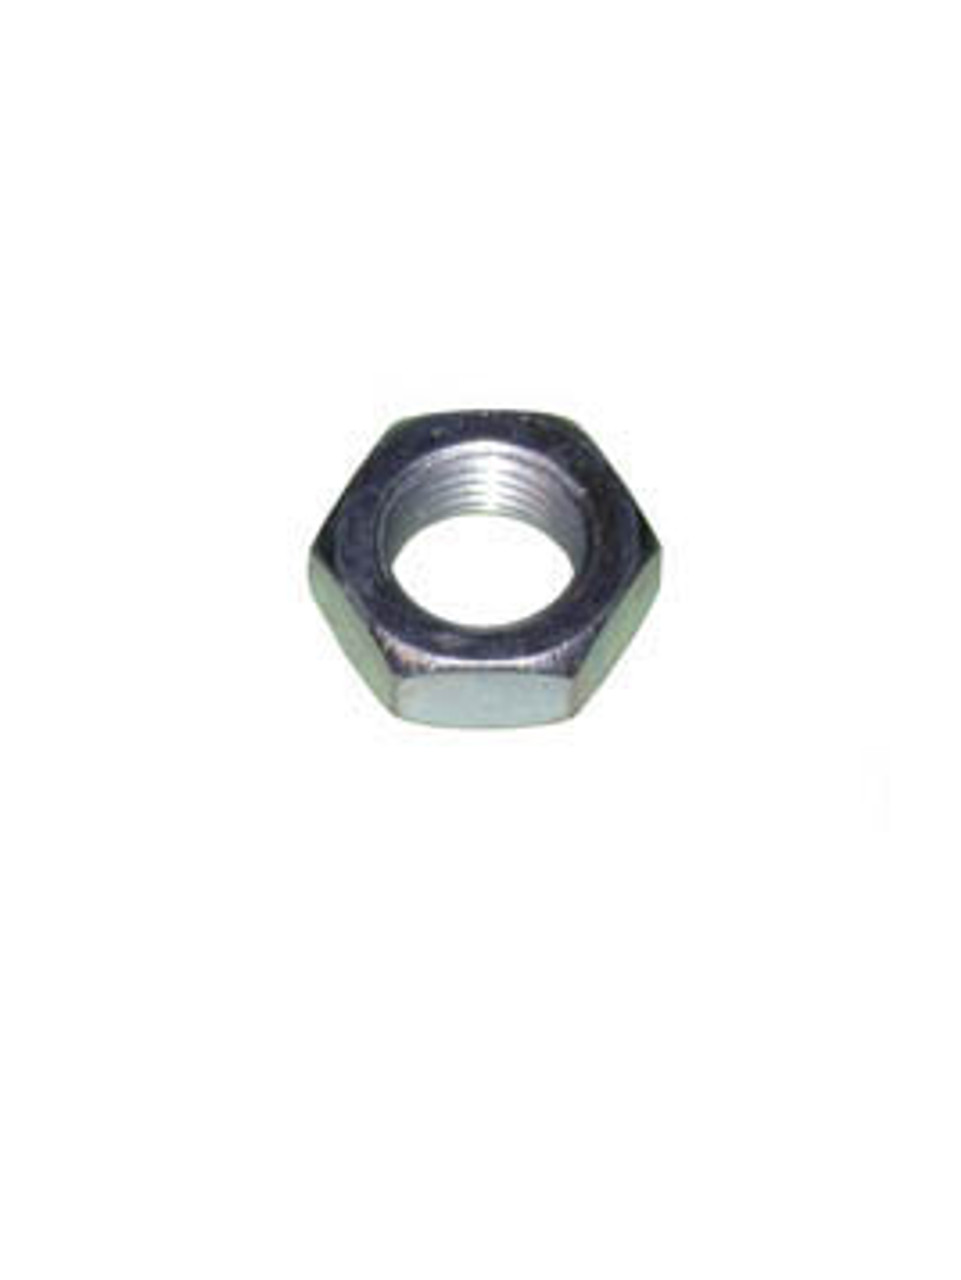 HN716G5ZF ---  Hydro-Act Actuator Spacer Nut 1841